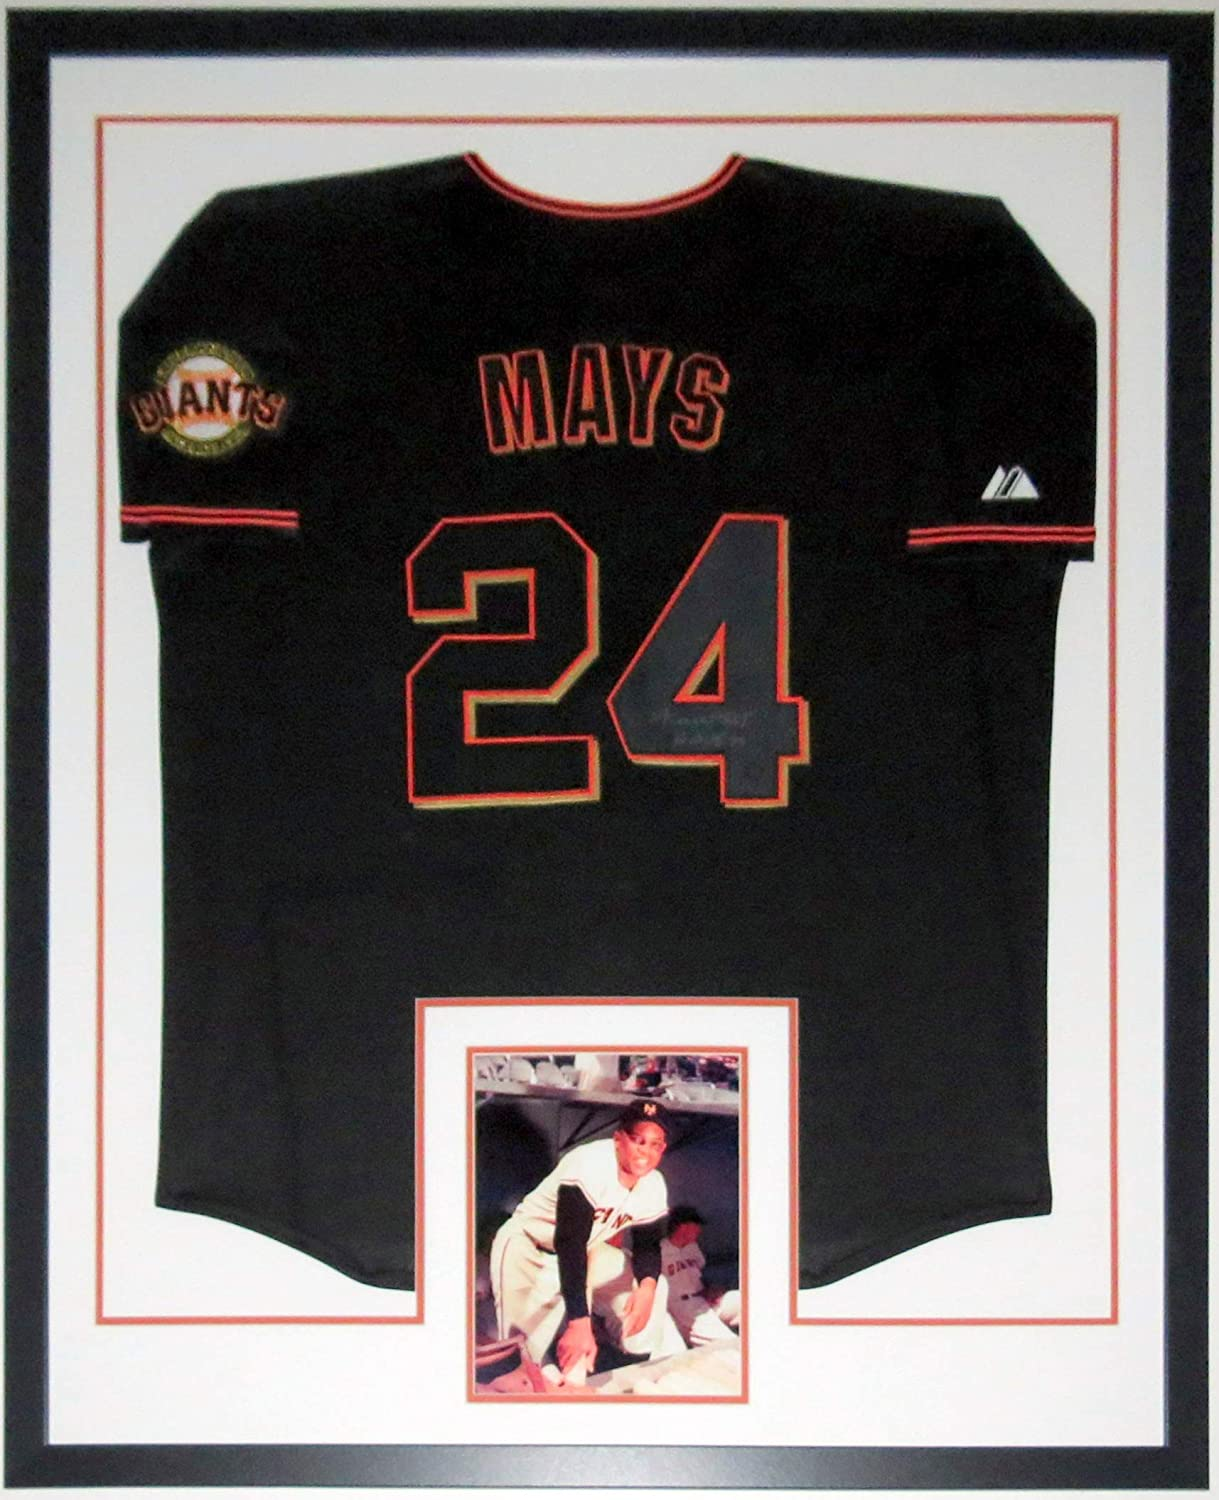 Willie Mays Authentic Signed Giants Jersey - Say Hey Authenticated COA - Professionally Framed & 8x10 Photo